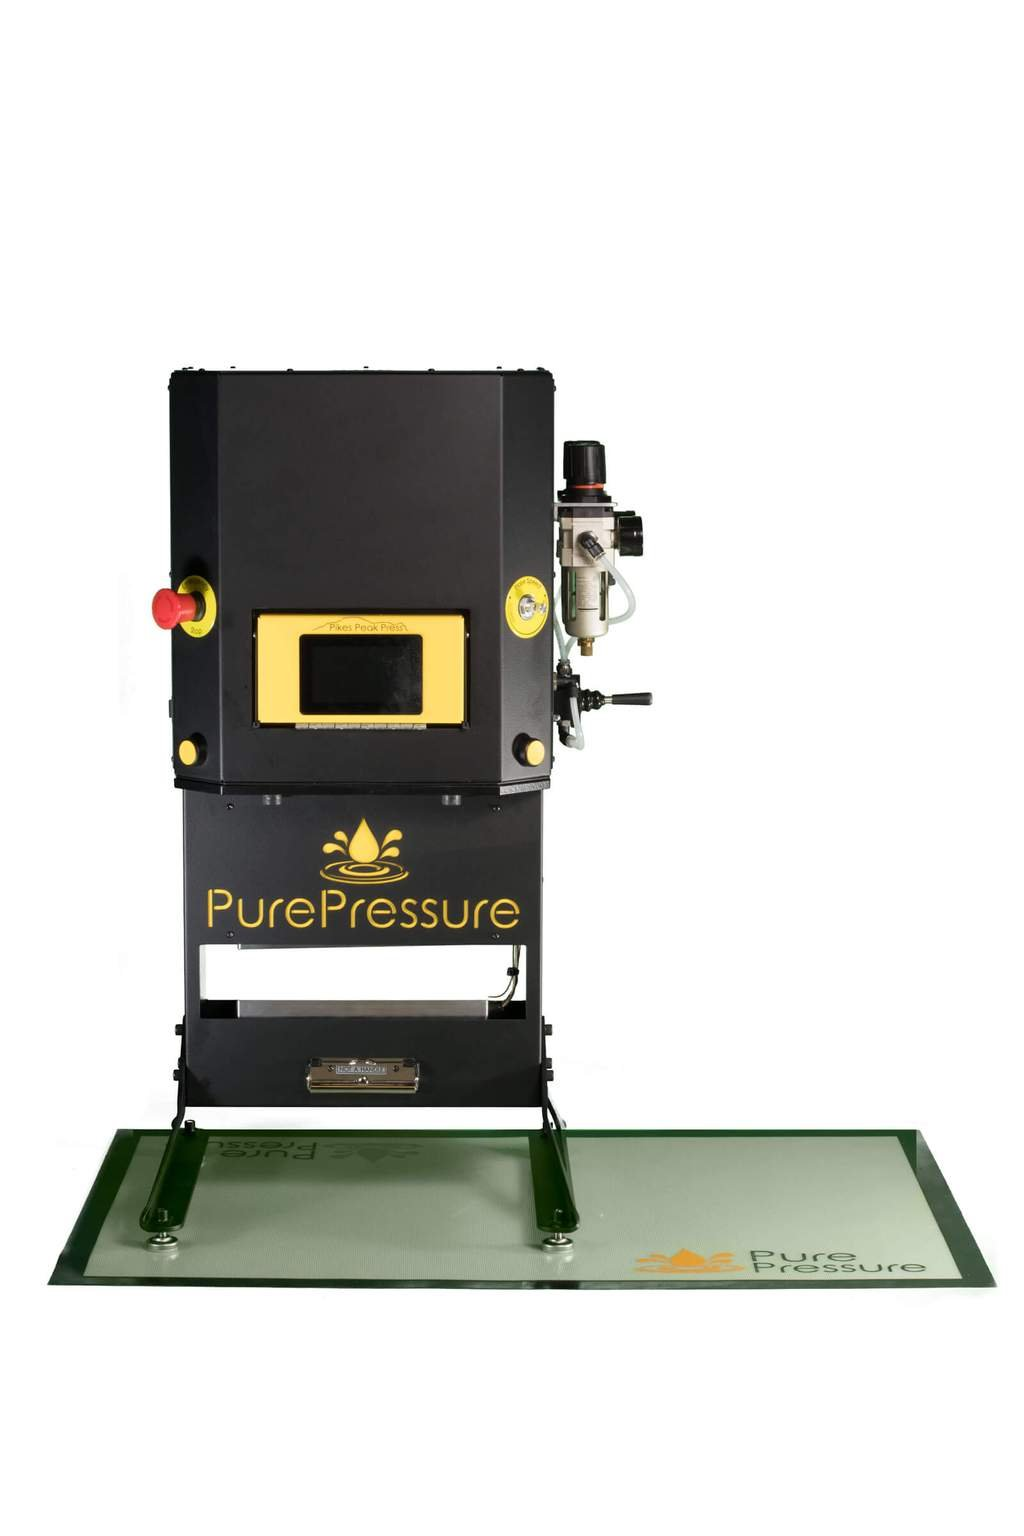 PurePressure Pure Pressure Large XL Silicone Dab Mat Wax Carving Baking Non Stick - Custom Logos and Colors! by PurePressure (Image #3)